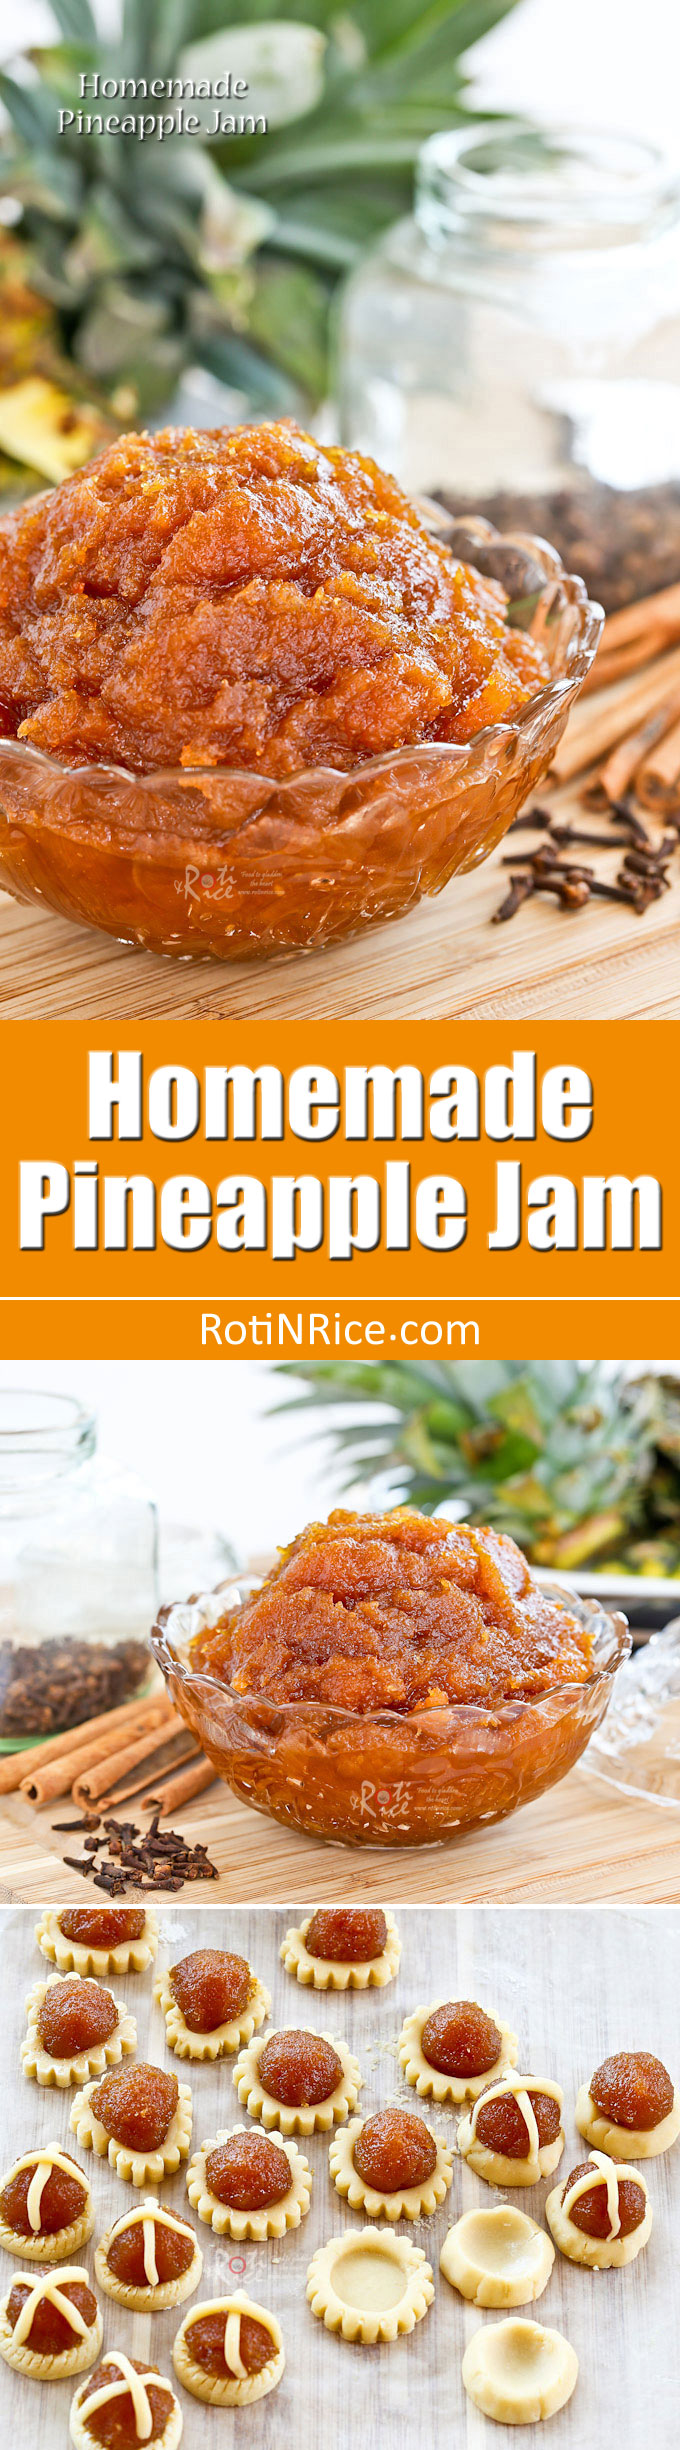 This golden Homemade Pineapple Jam is the perfect filling for mini tarts and thumbprint cookies with just the right amount of sweetness and tartness. | RotiNRice.com